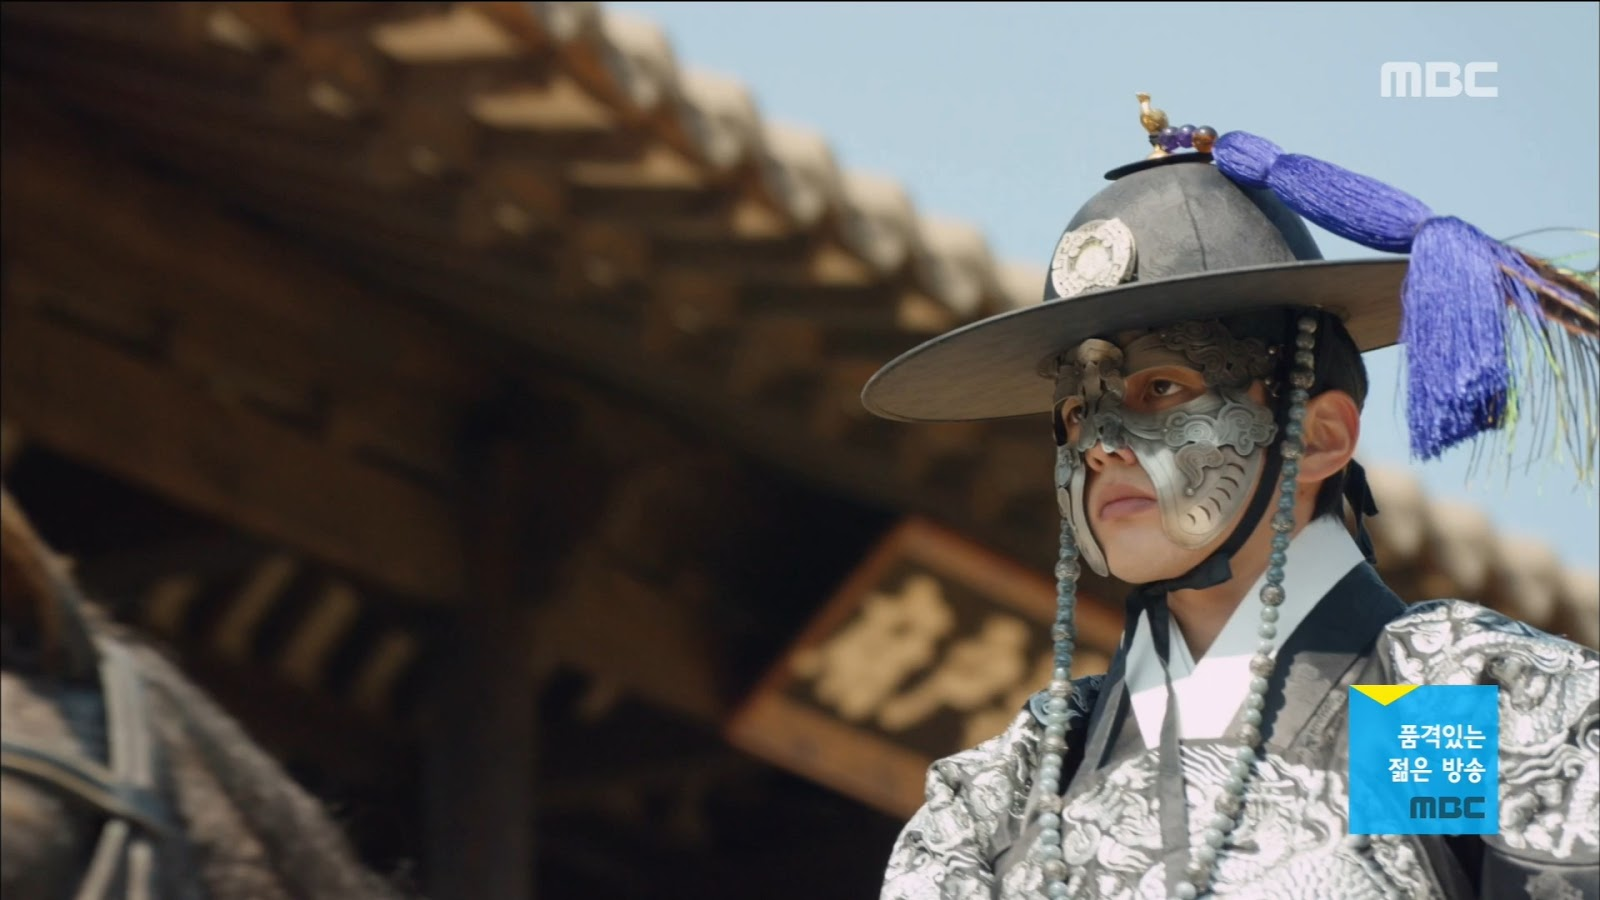 Yoo Seung-Ho in Ruler: Master of the Mask (MBC)